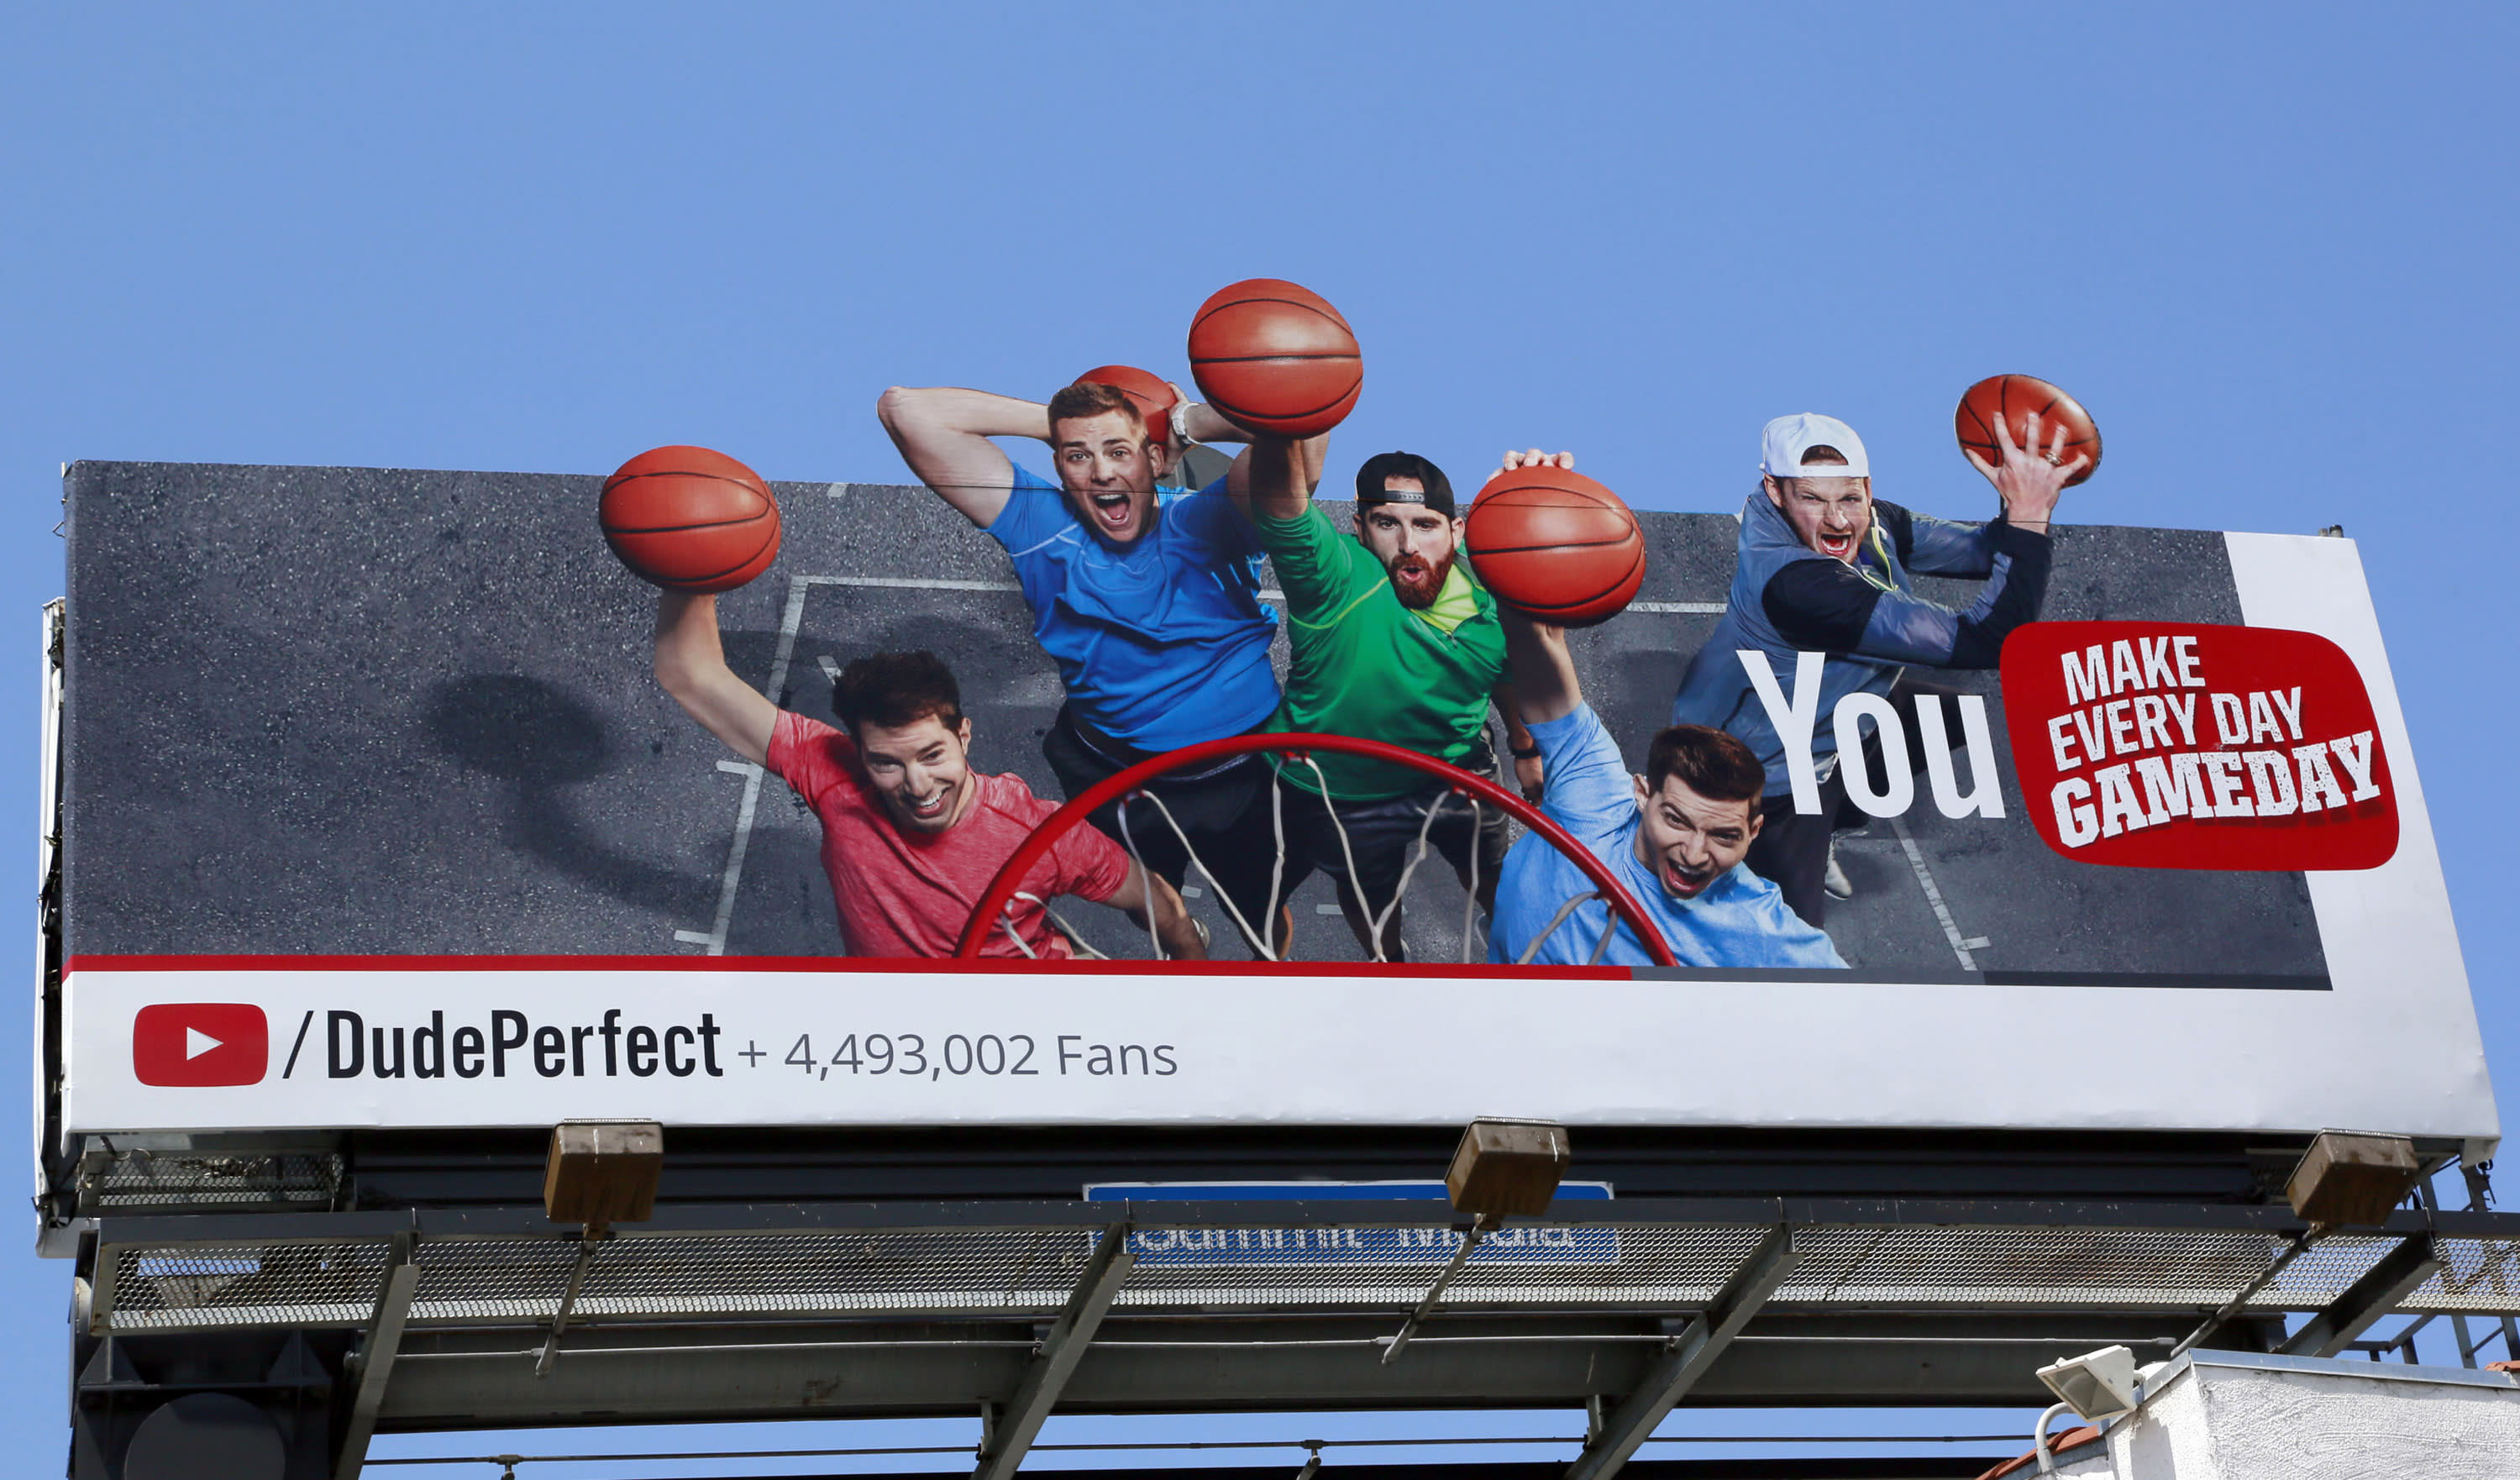 After a decade online, YouTube is redefining celebrity